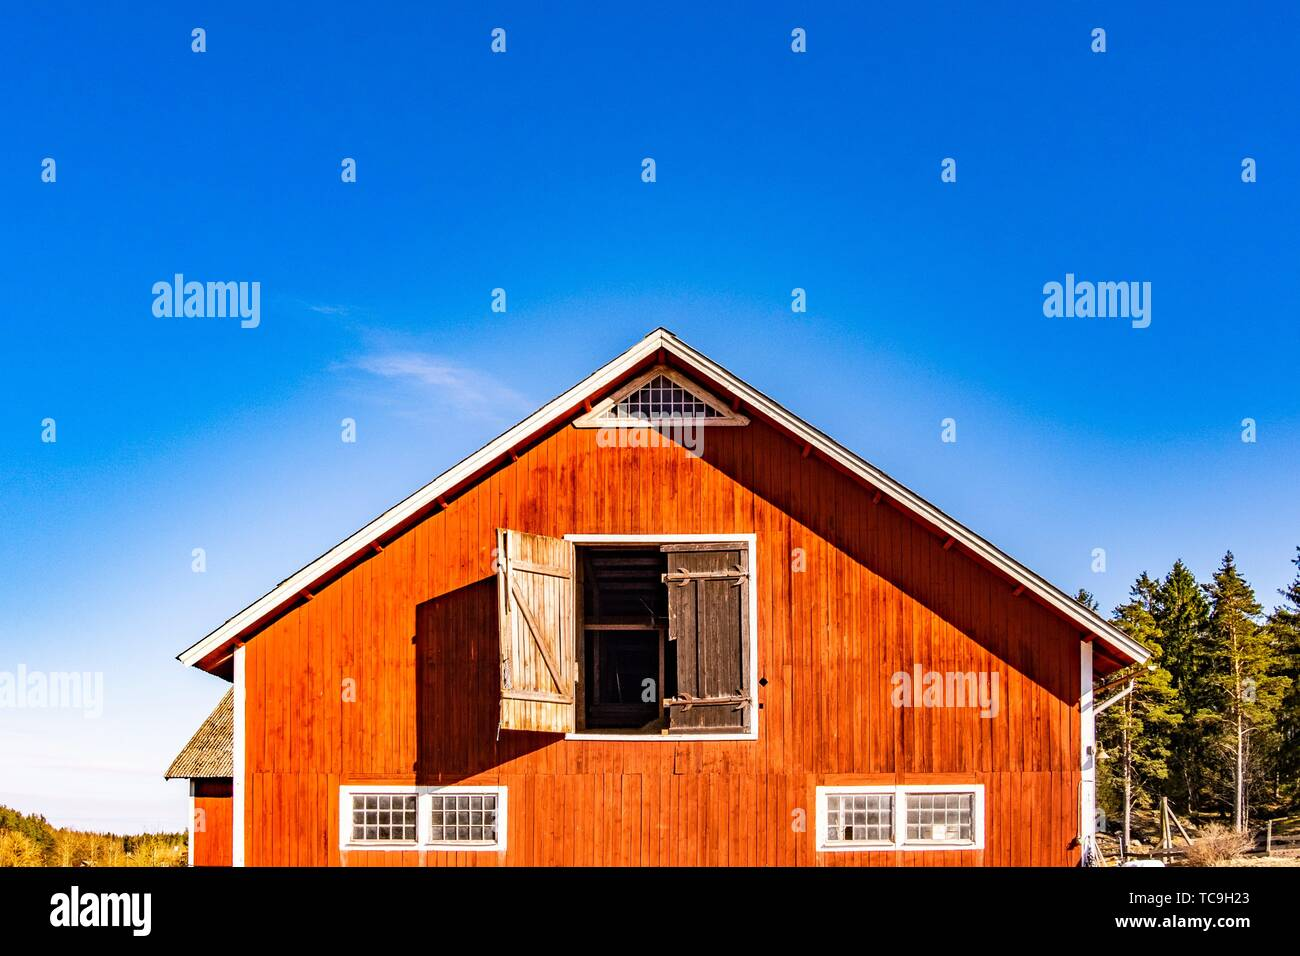 Traditional red barn in Sweden. - Stock Image